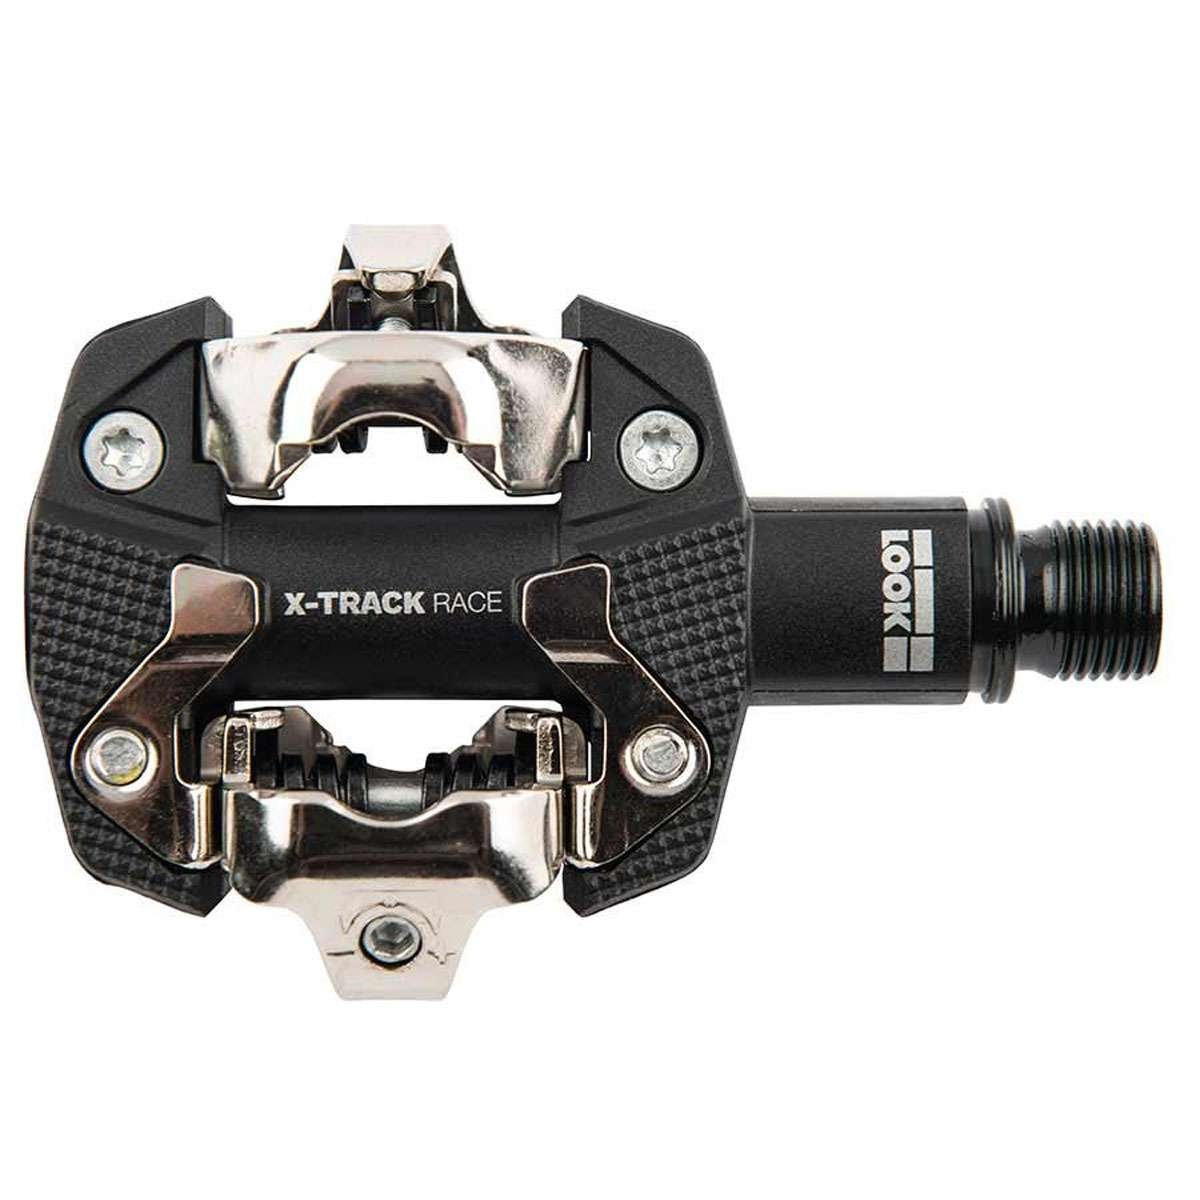 35d553e33bd Amazon.com   Look X-Track Race Mountain Pedals   Sports   Outdoors